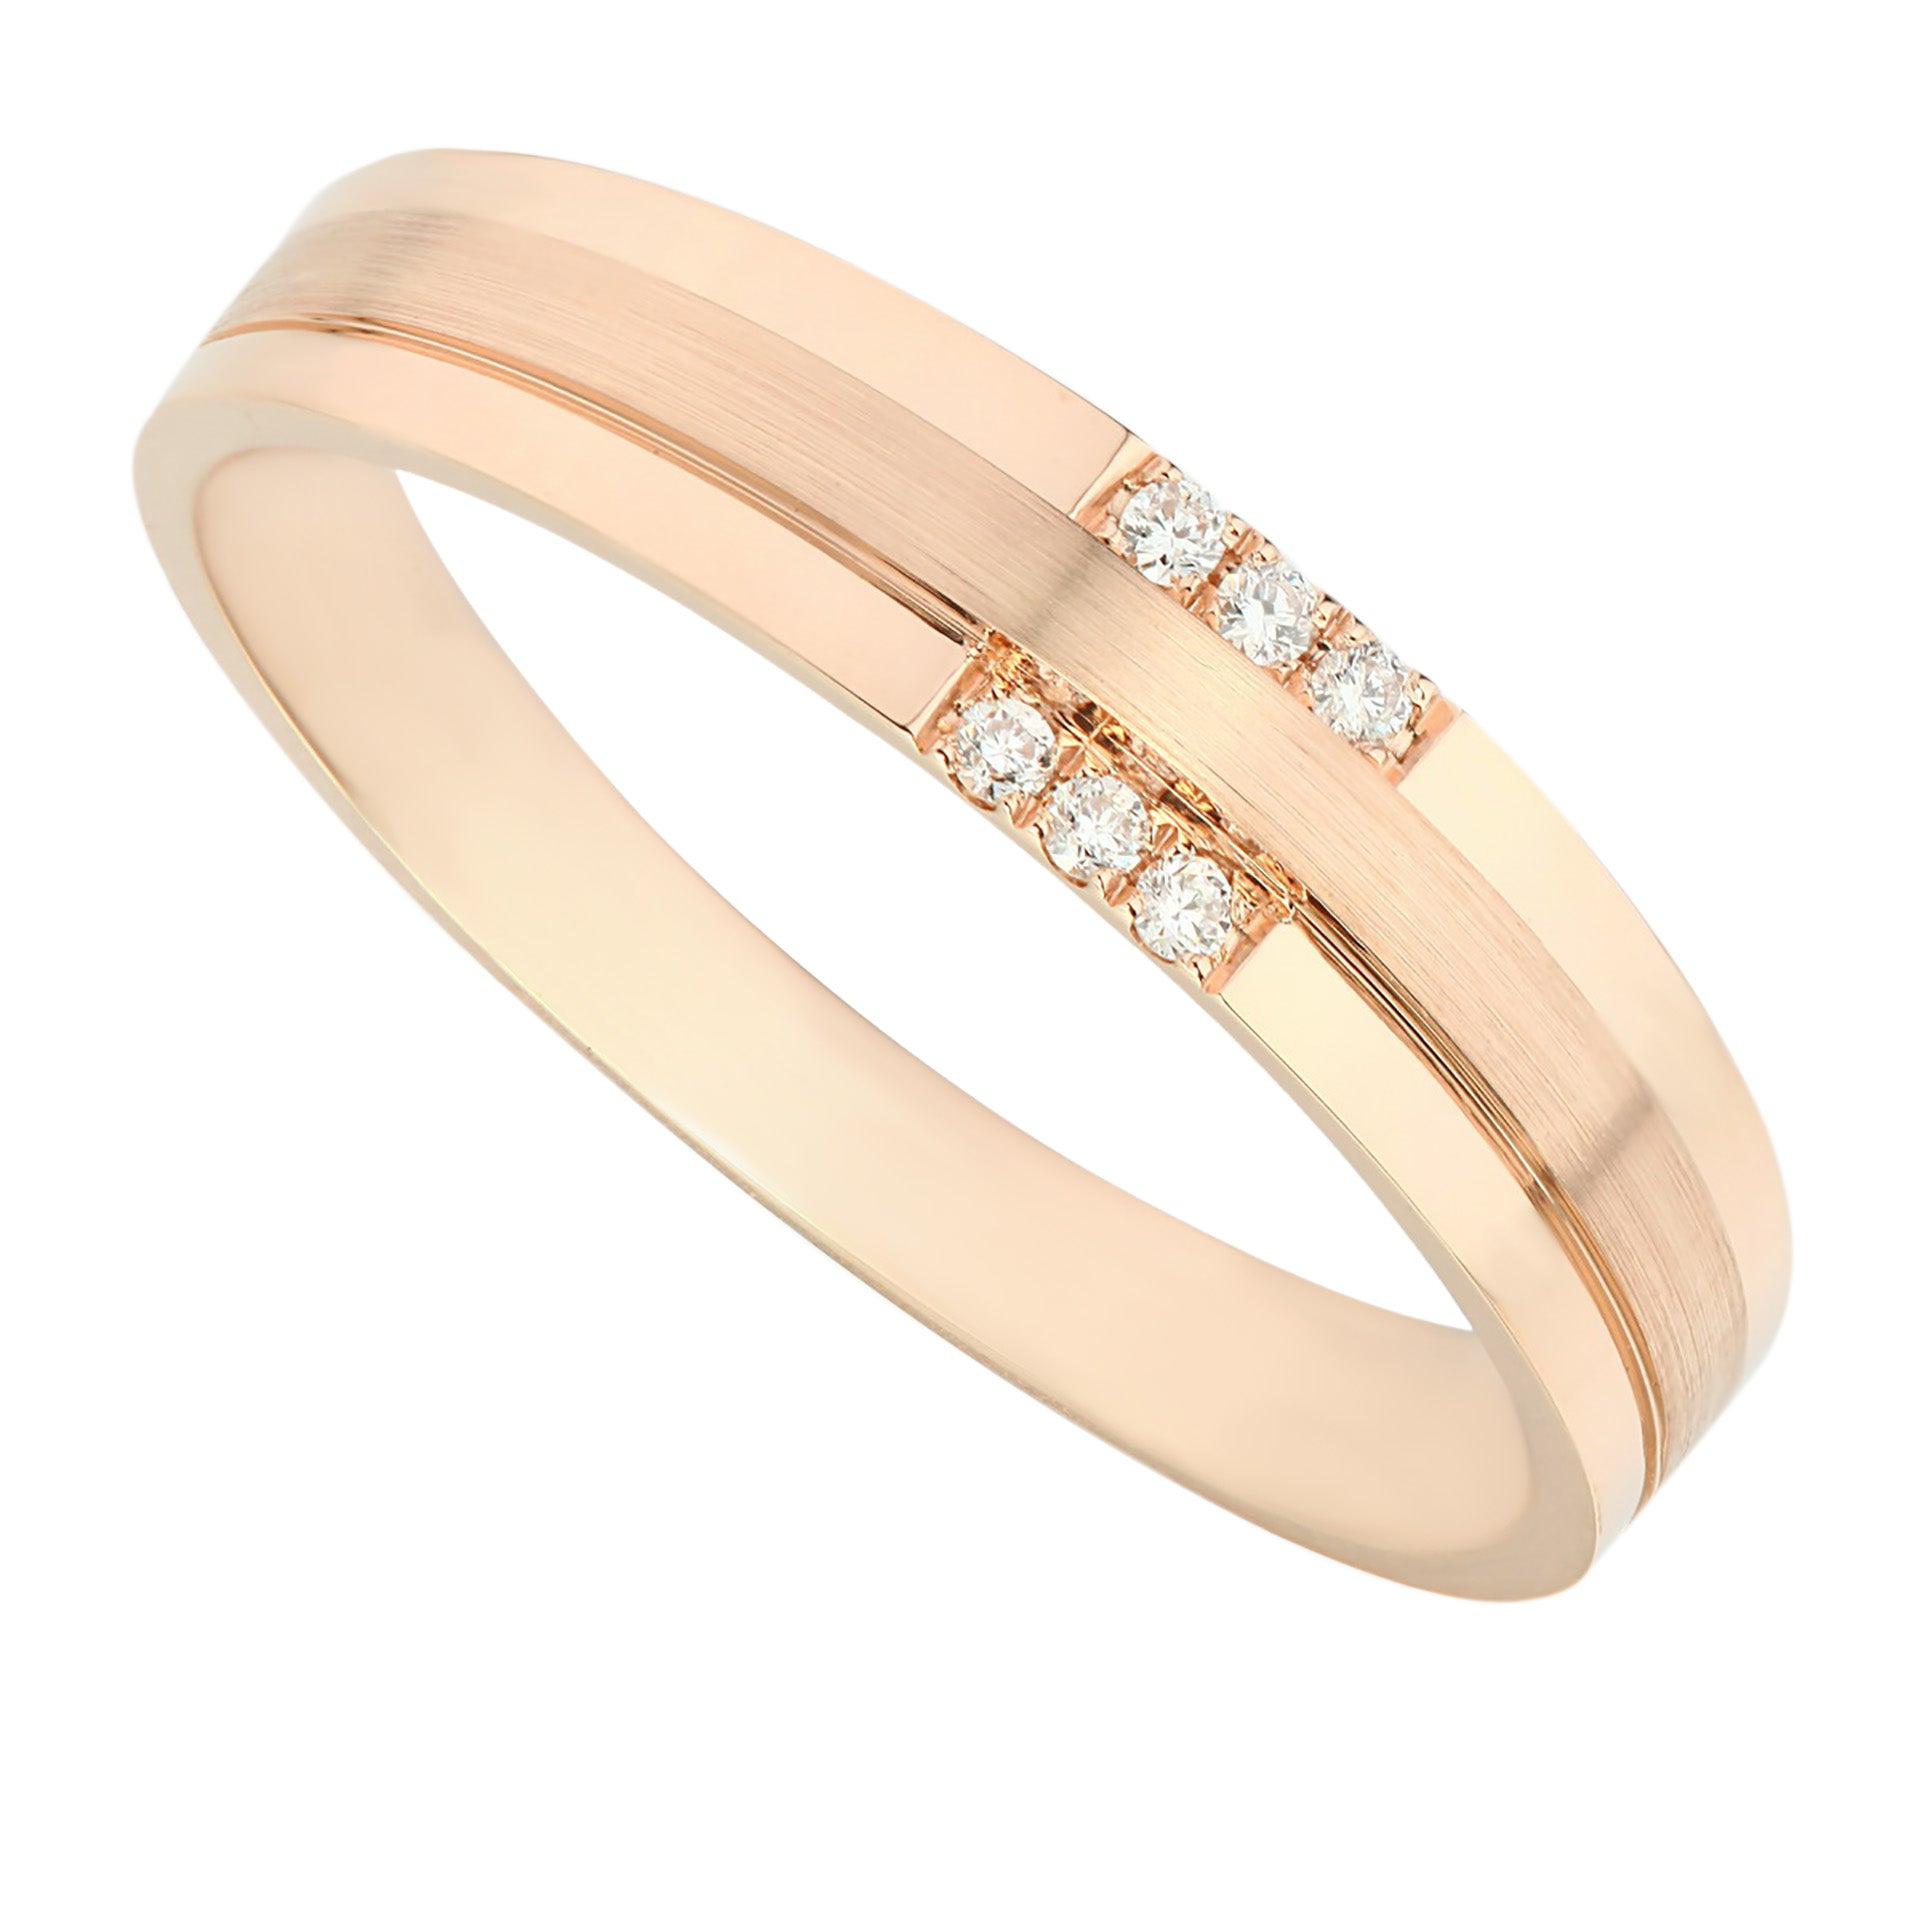 High Quality Polished Rose Gold Diamond Men's Ring - KARP Jewellery